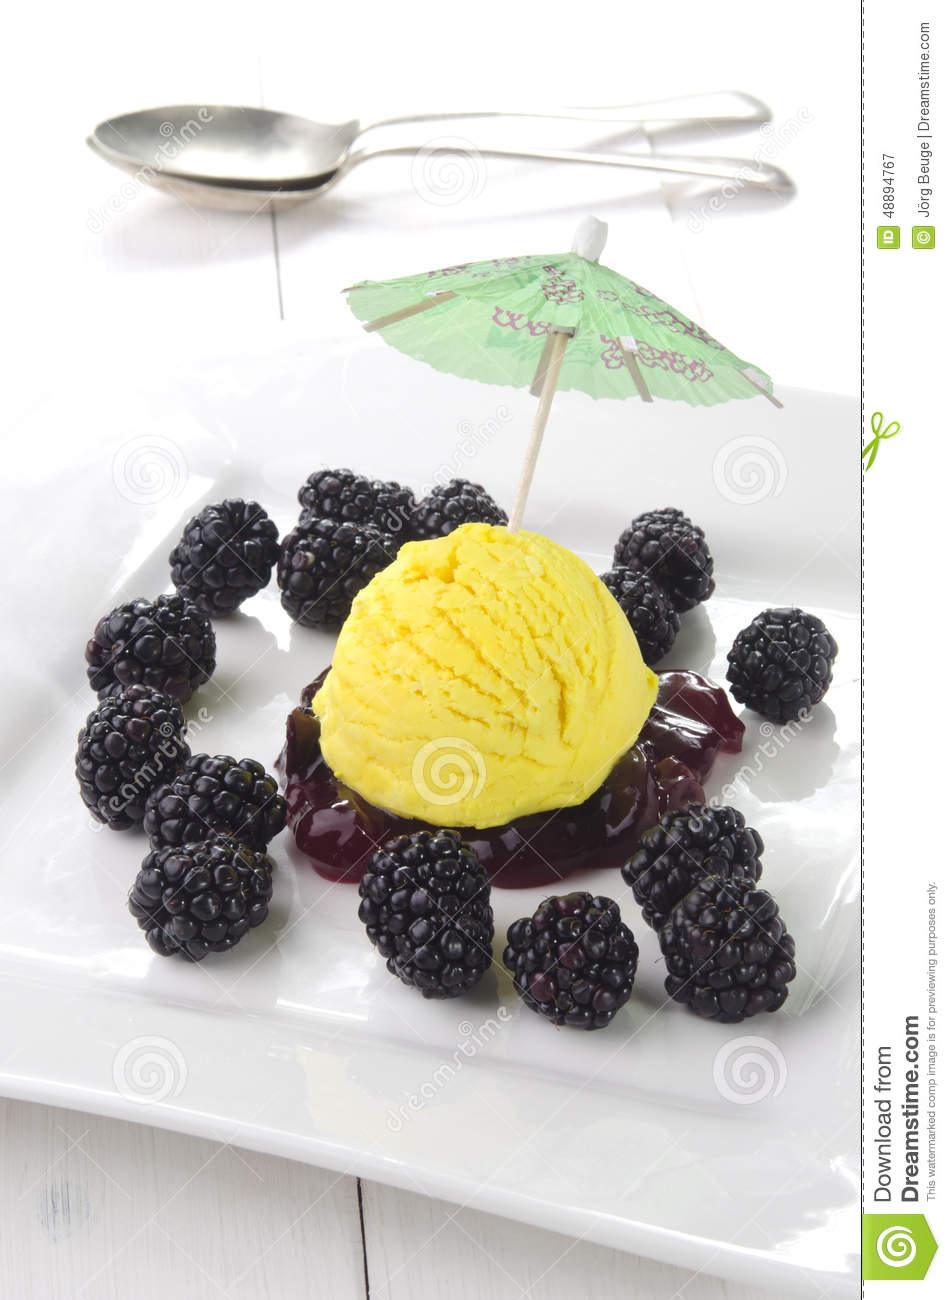 Lemon Ice Ball With Blackberries Stock Photo - Image: 48894767